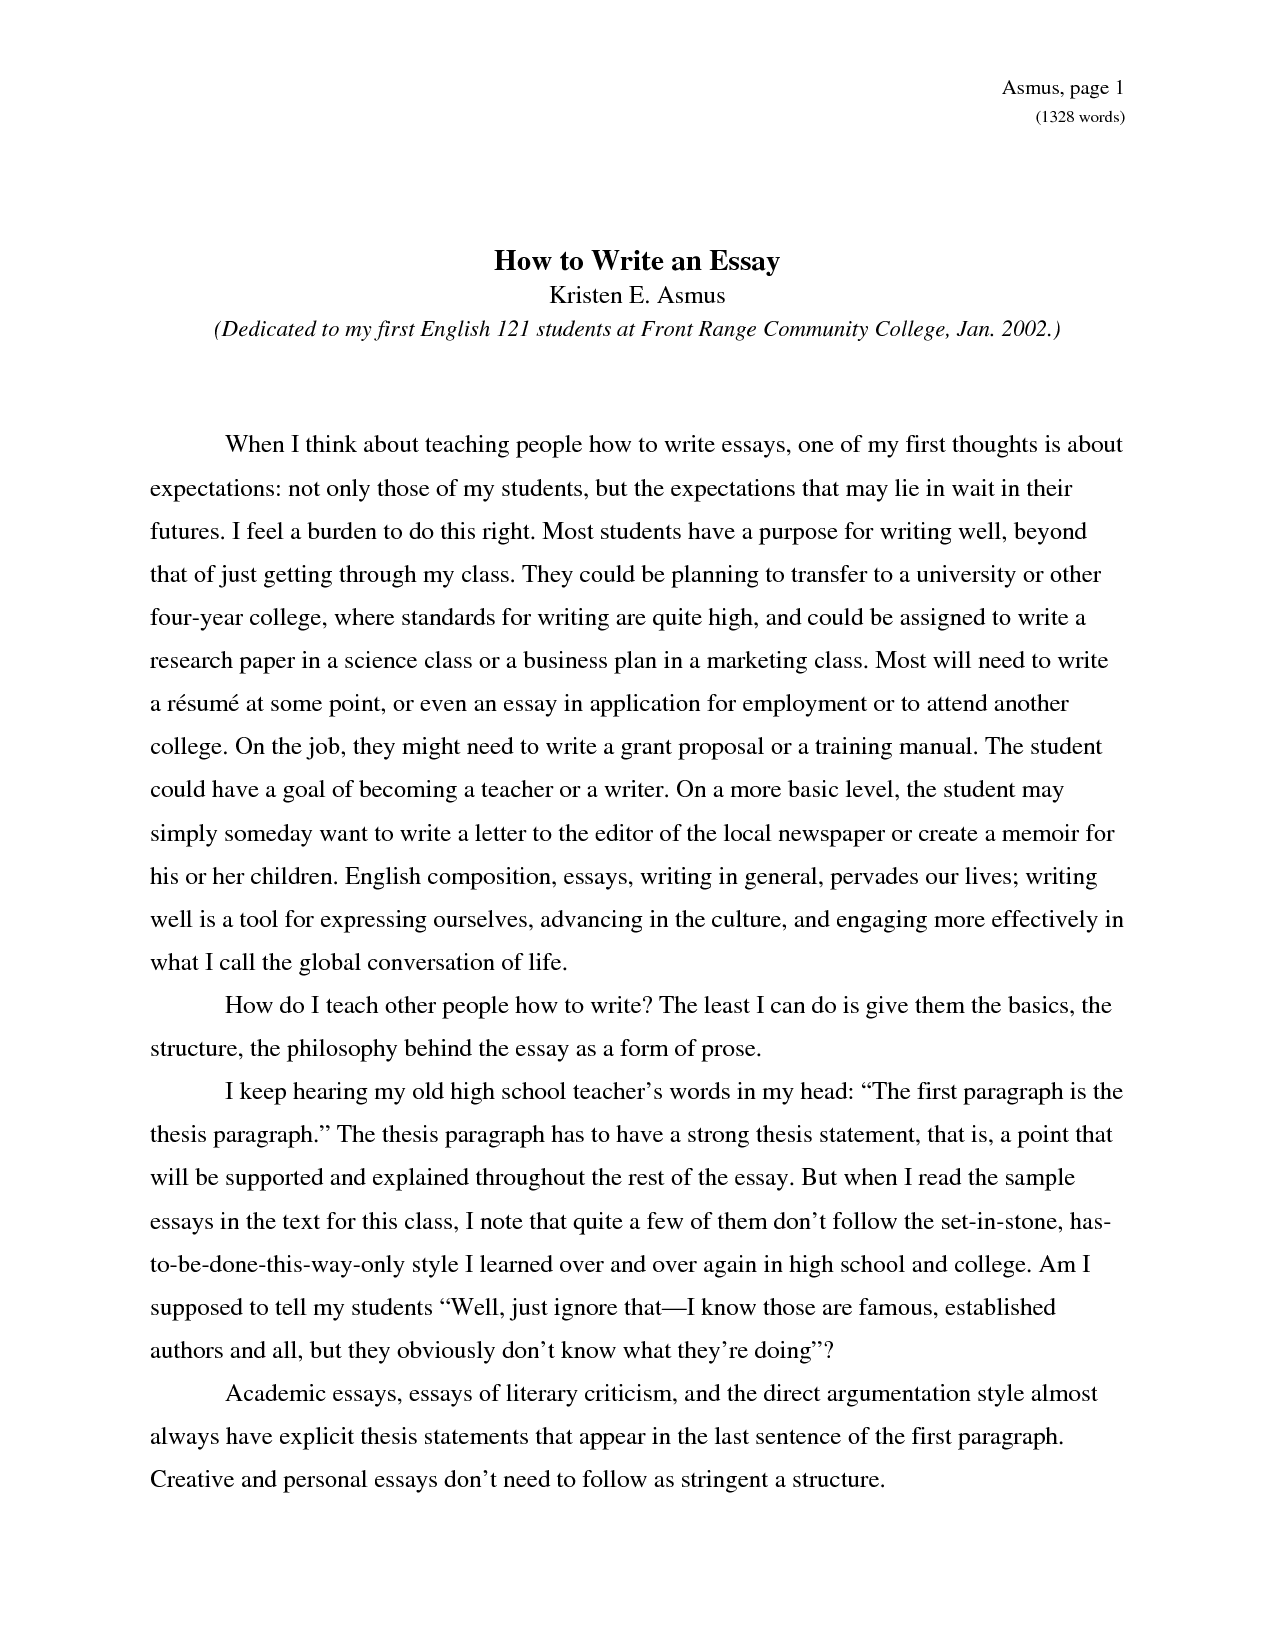 Essays on writing